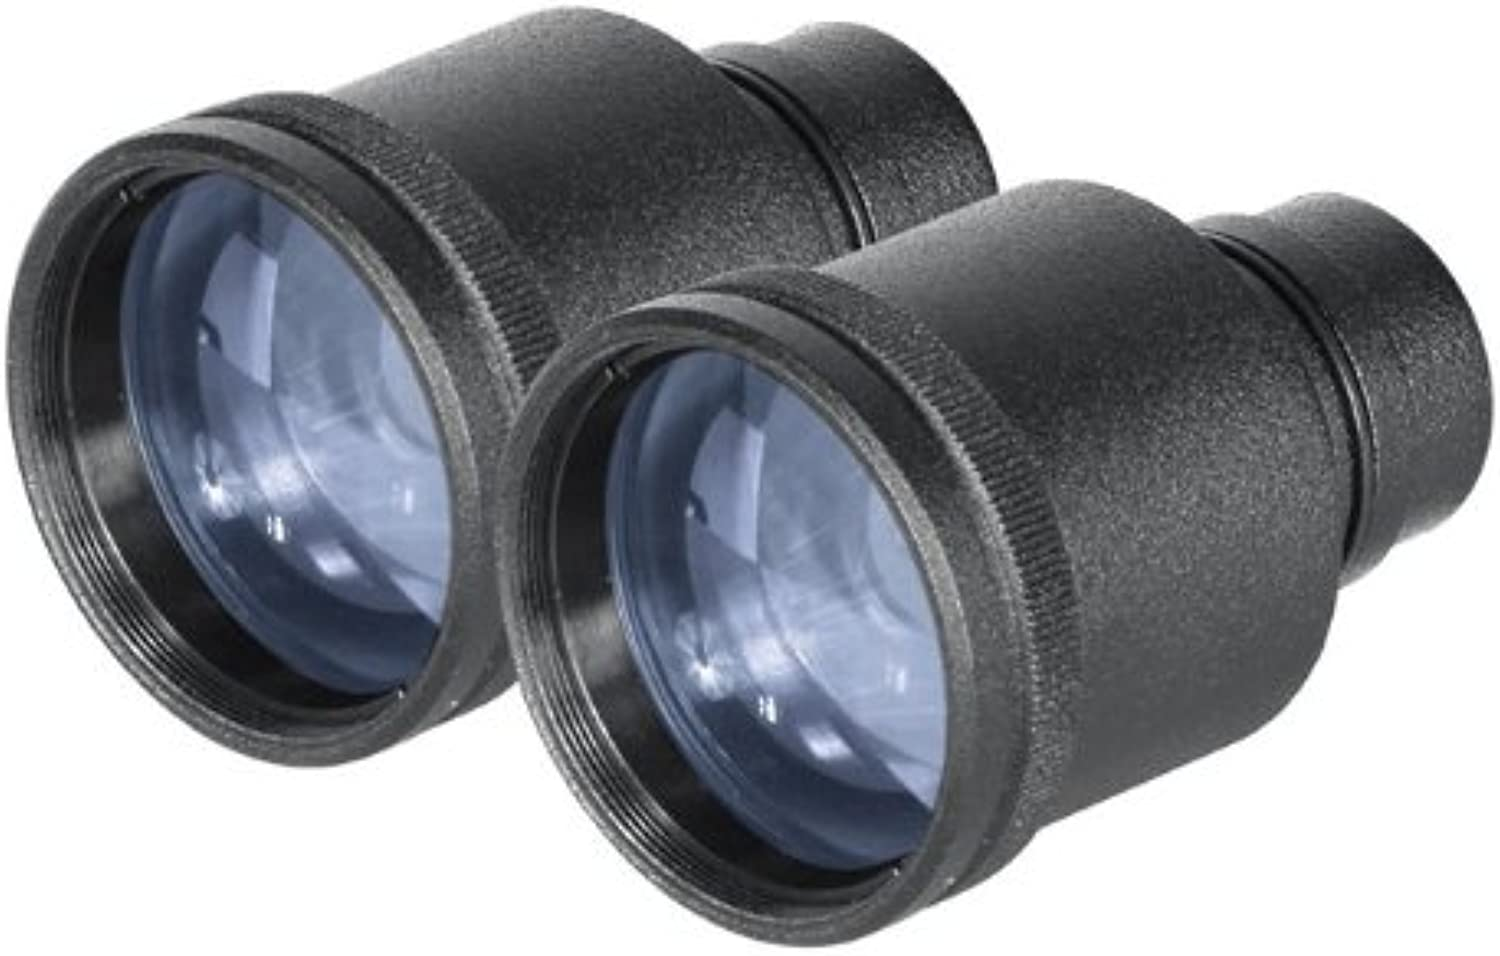 Armasight N15 AFocal 3x Lens Kit